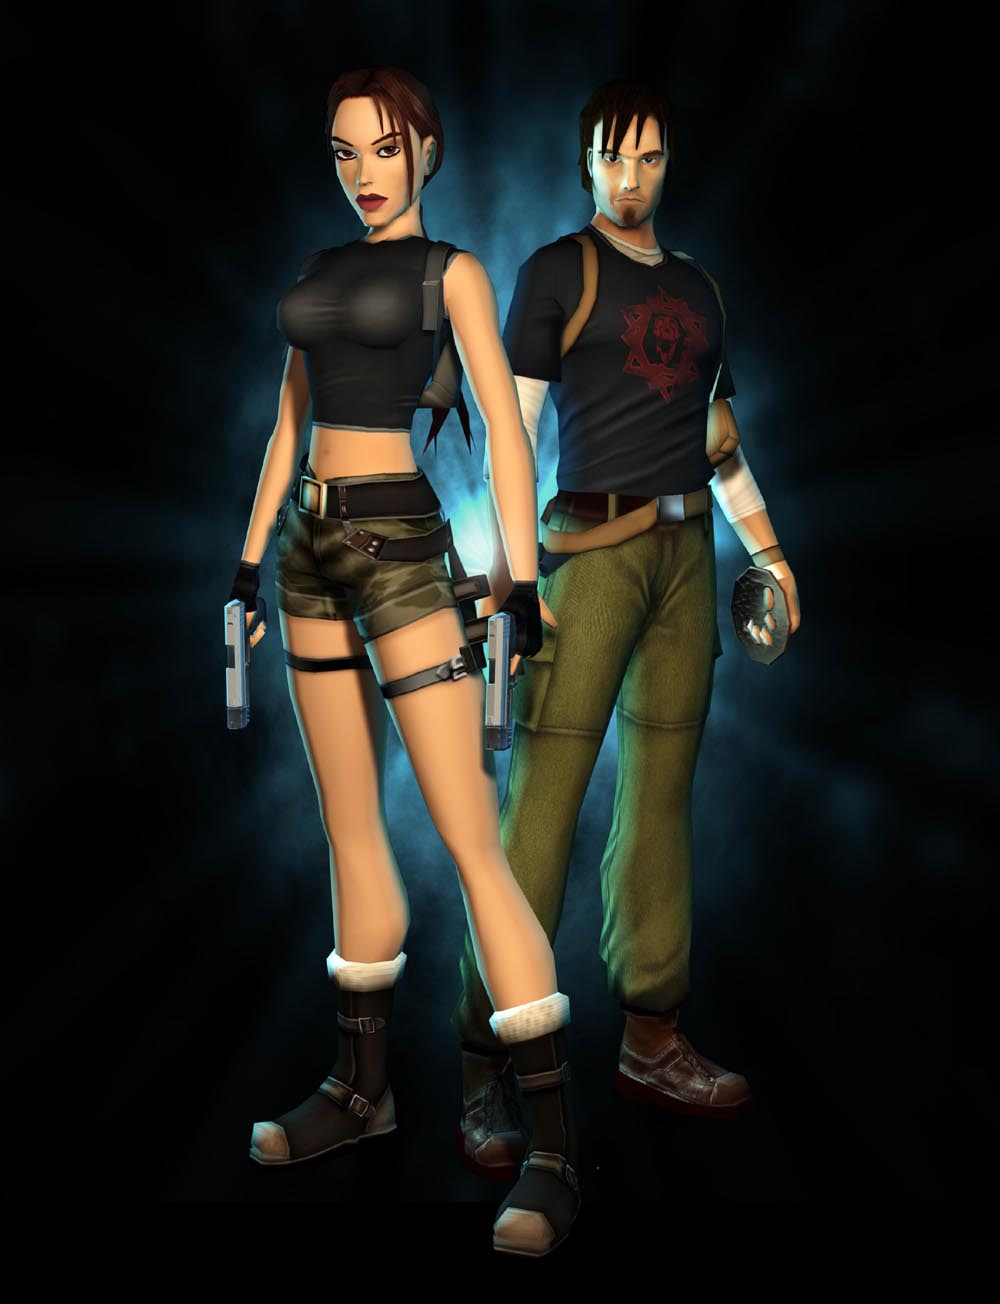 Tomb raider angel of darkness nude patch exploited actresses